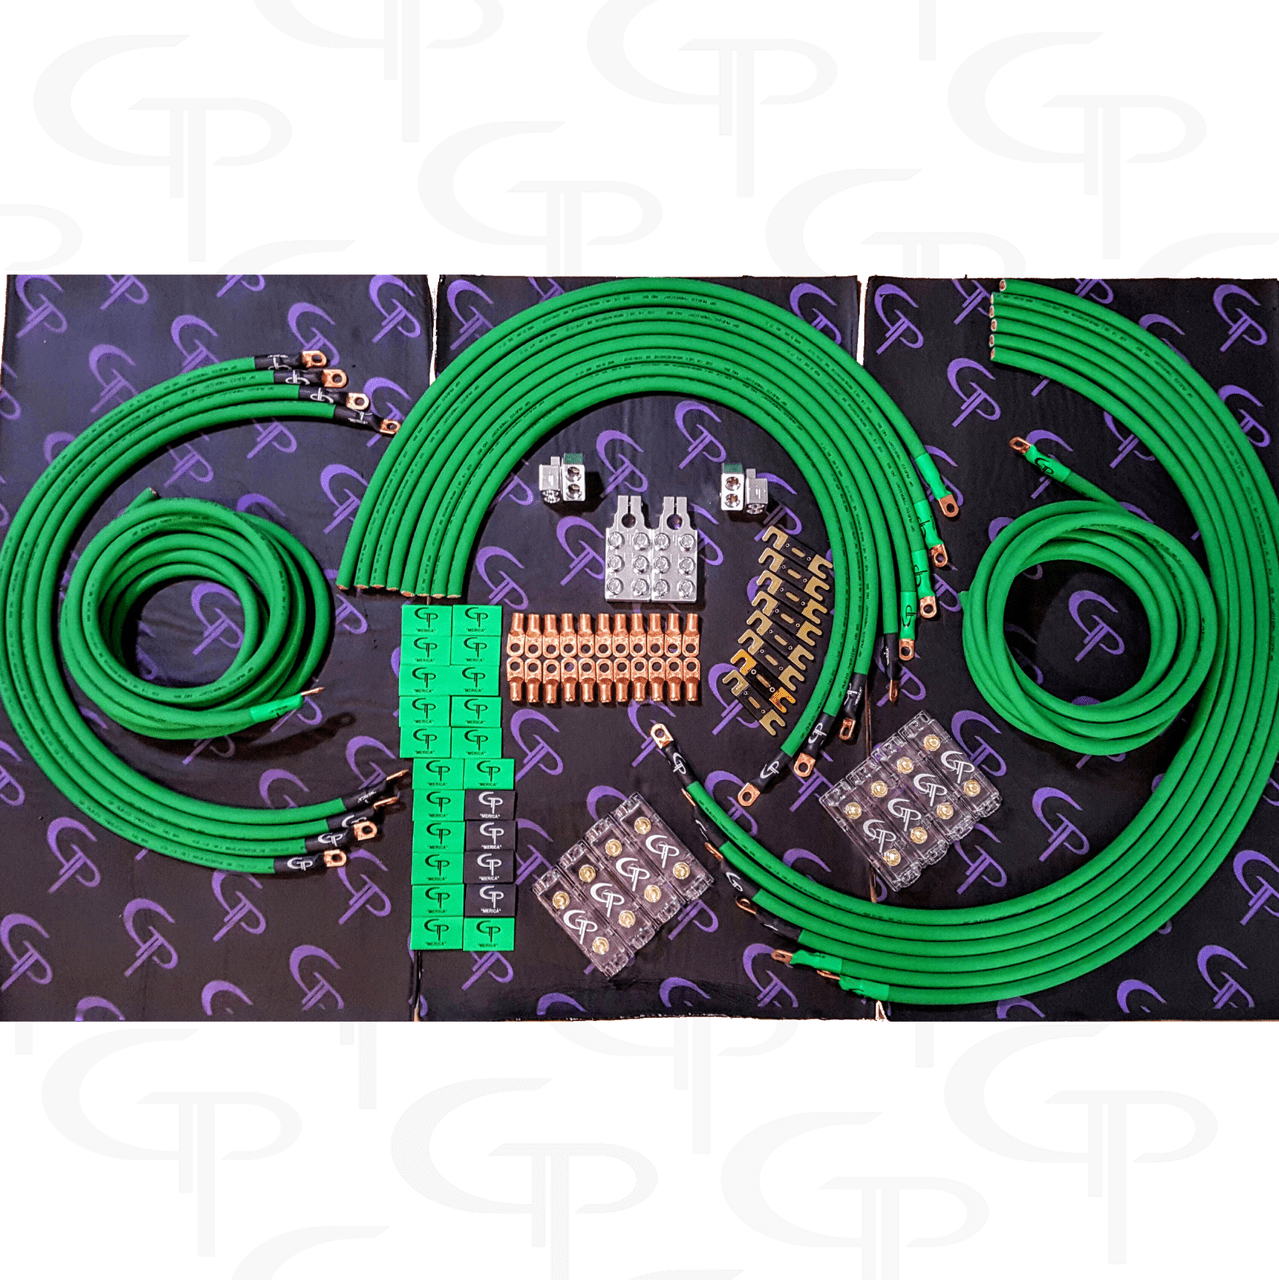 hight resolution of awg car stereo wiring harness advance wiring diagram awg car stereo wiring harness